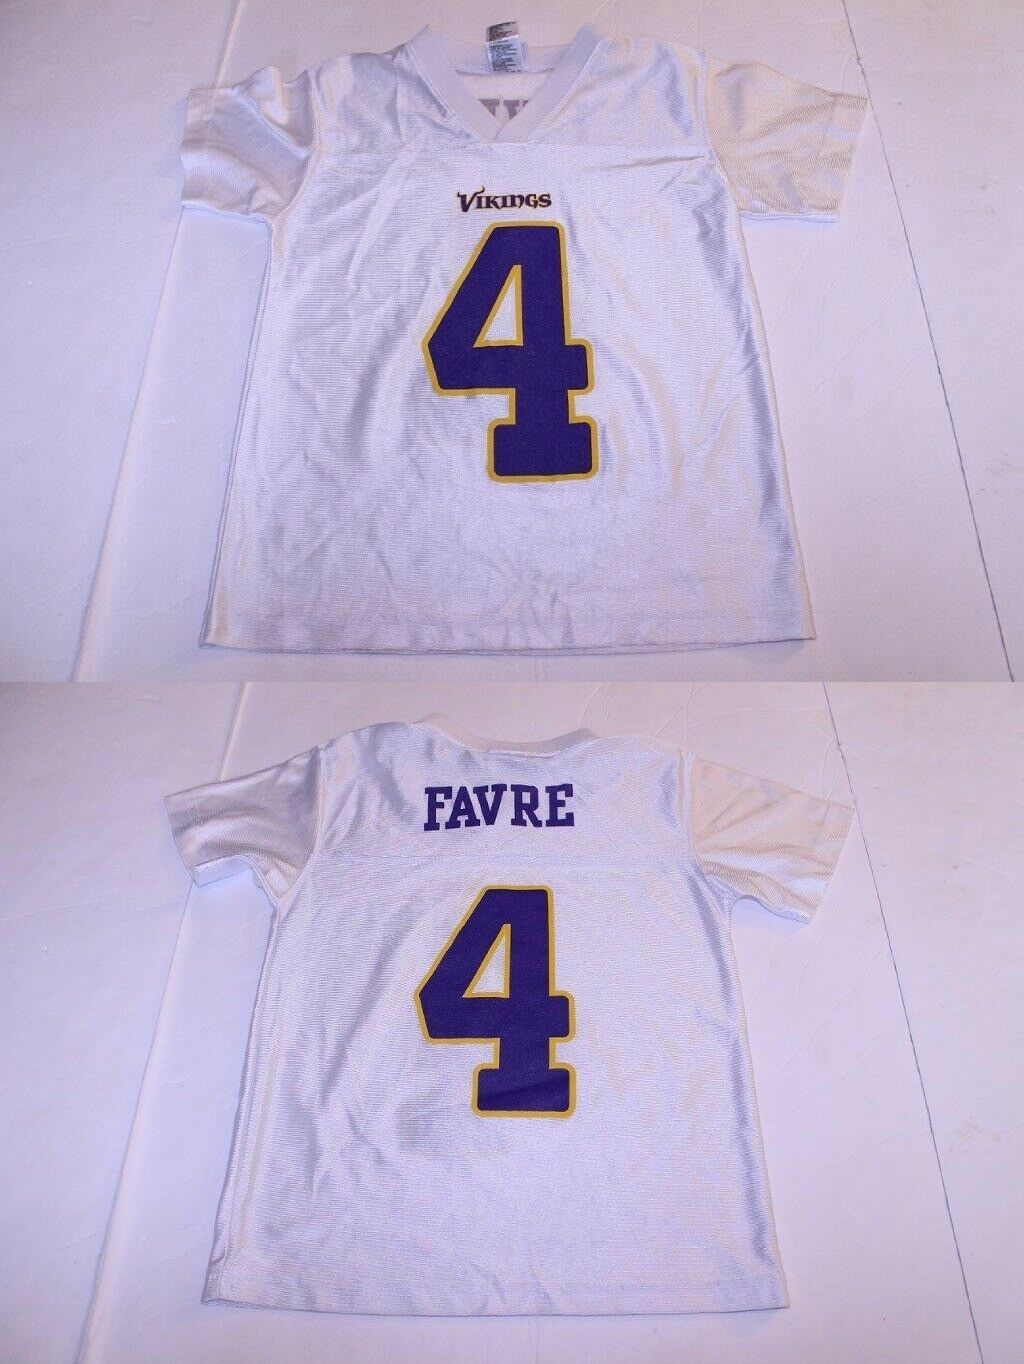 Primary image for Youth Minnesota Vikings Bret Favre S (8) Jersey (White) NFL Team Apparel